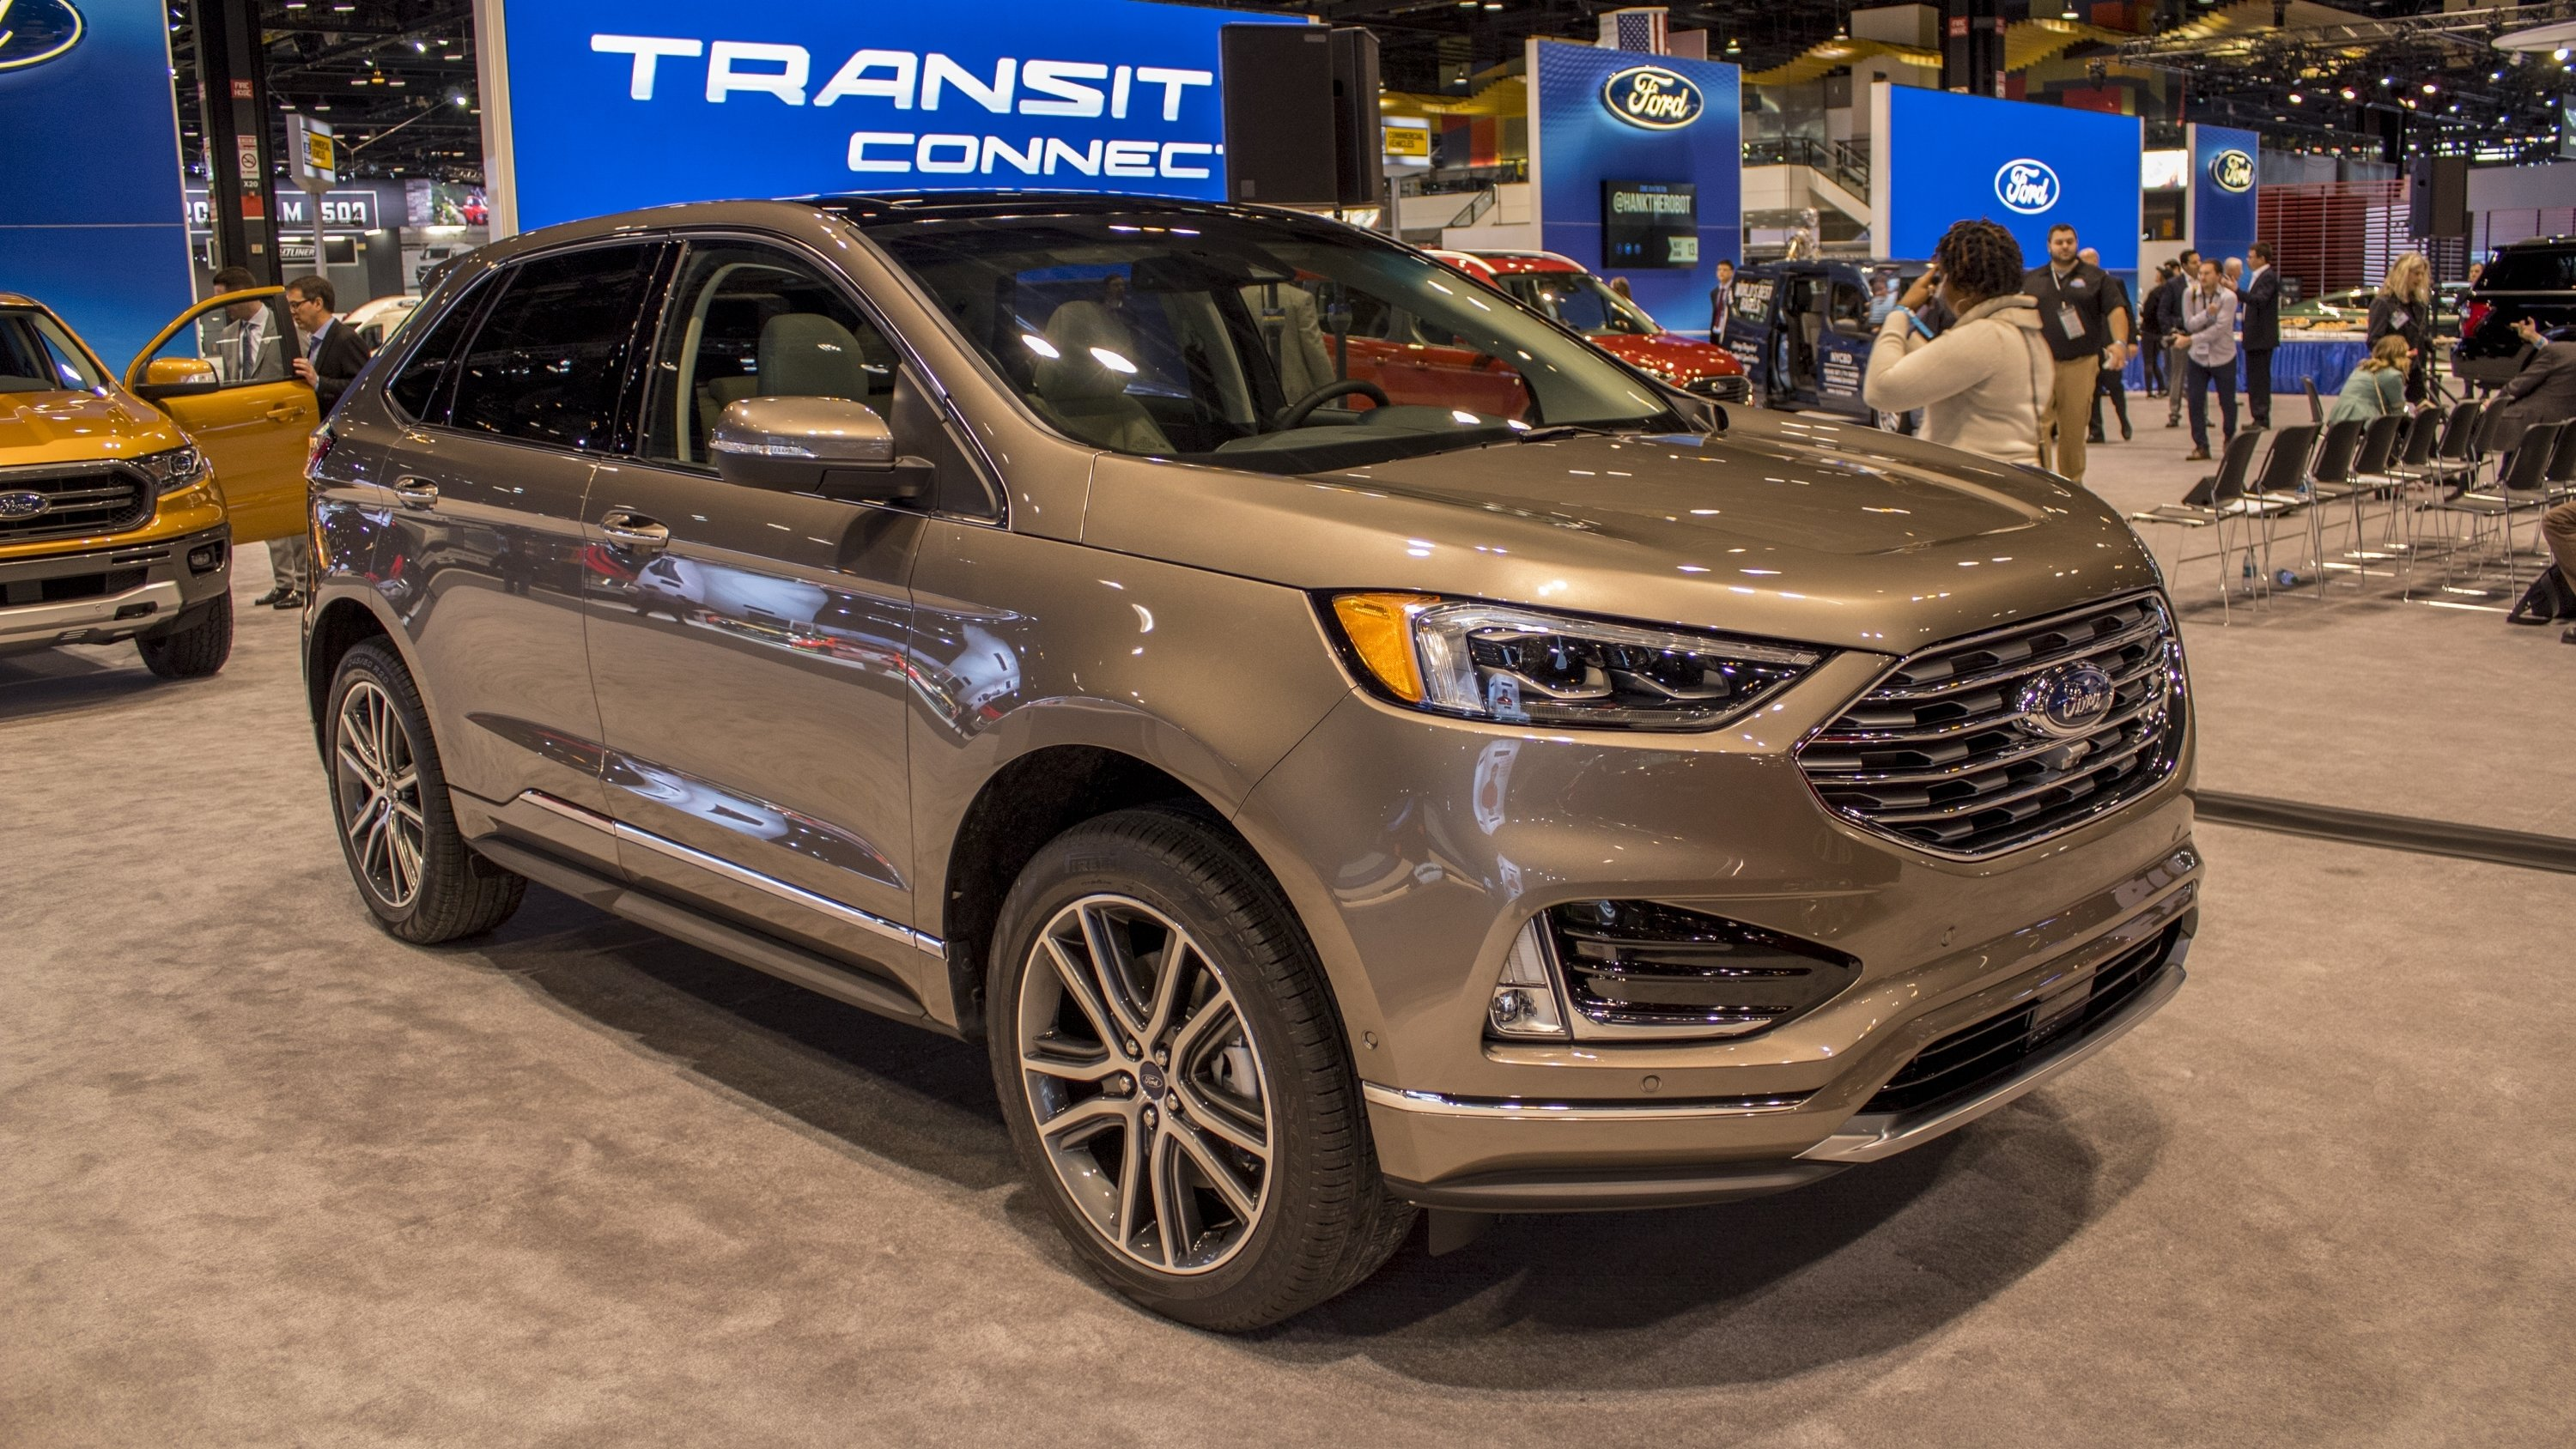 Introduced In  The Ford Edge One Of The Companys Key Vehicles Gained A Significant Update For The  Model Alongside The Revised Exterior